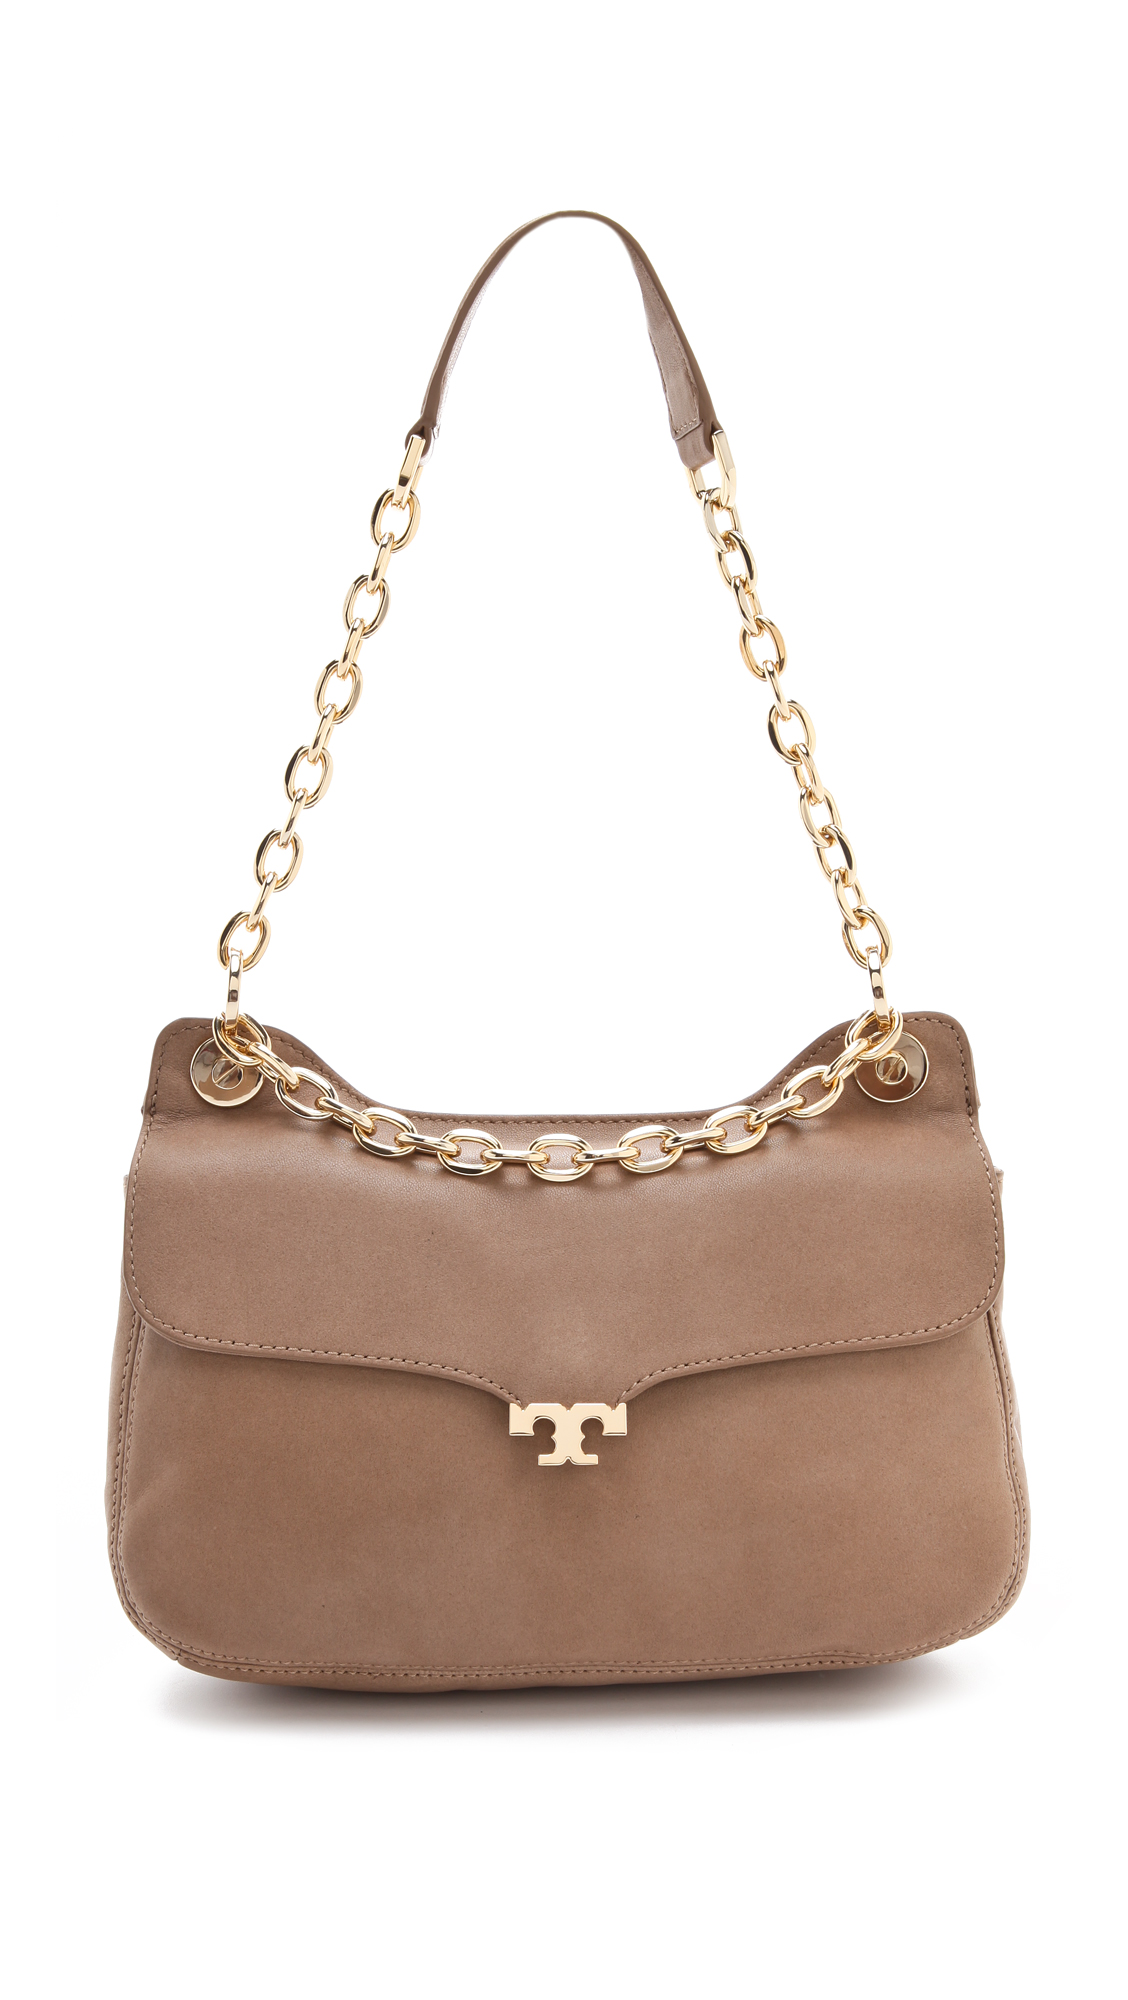 Tory Burch Megan Shoulder Bag Taupe 39